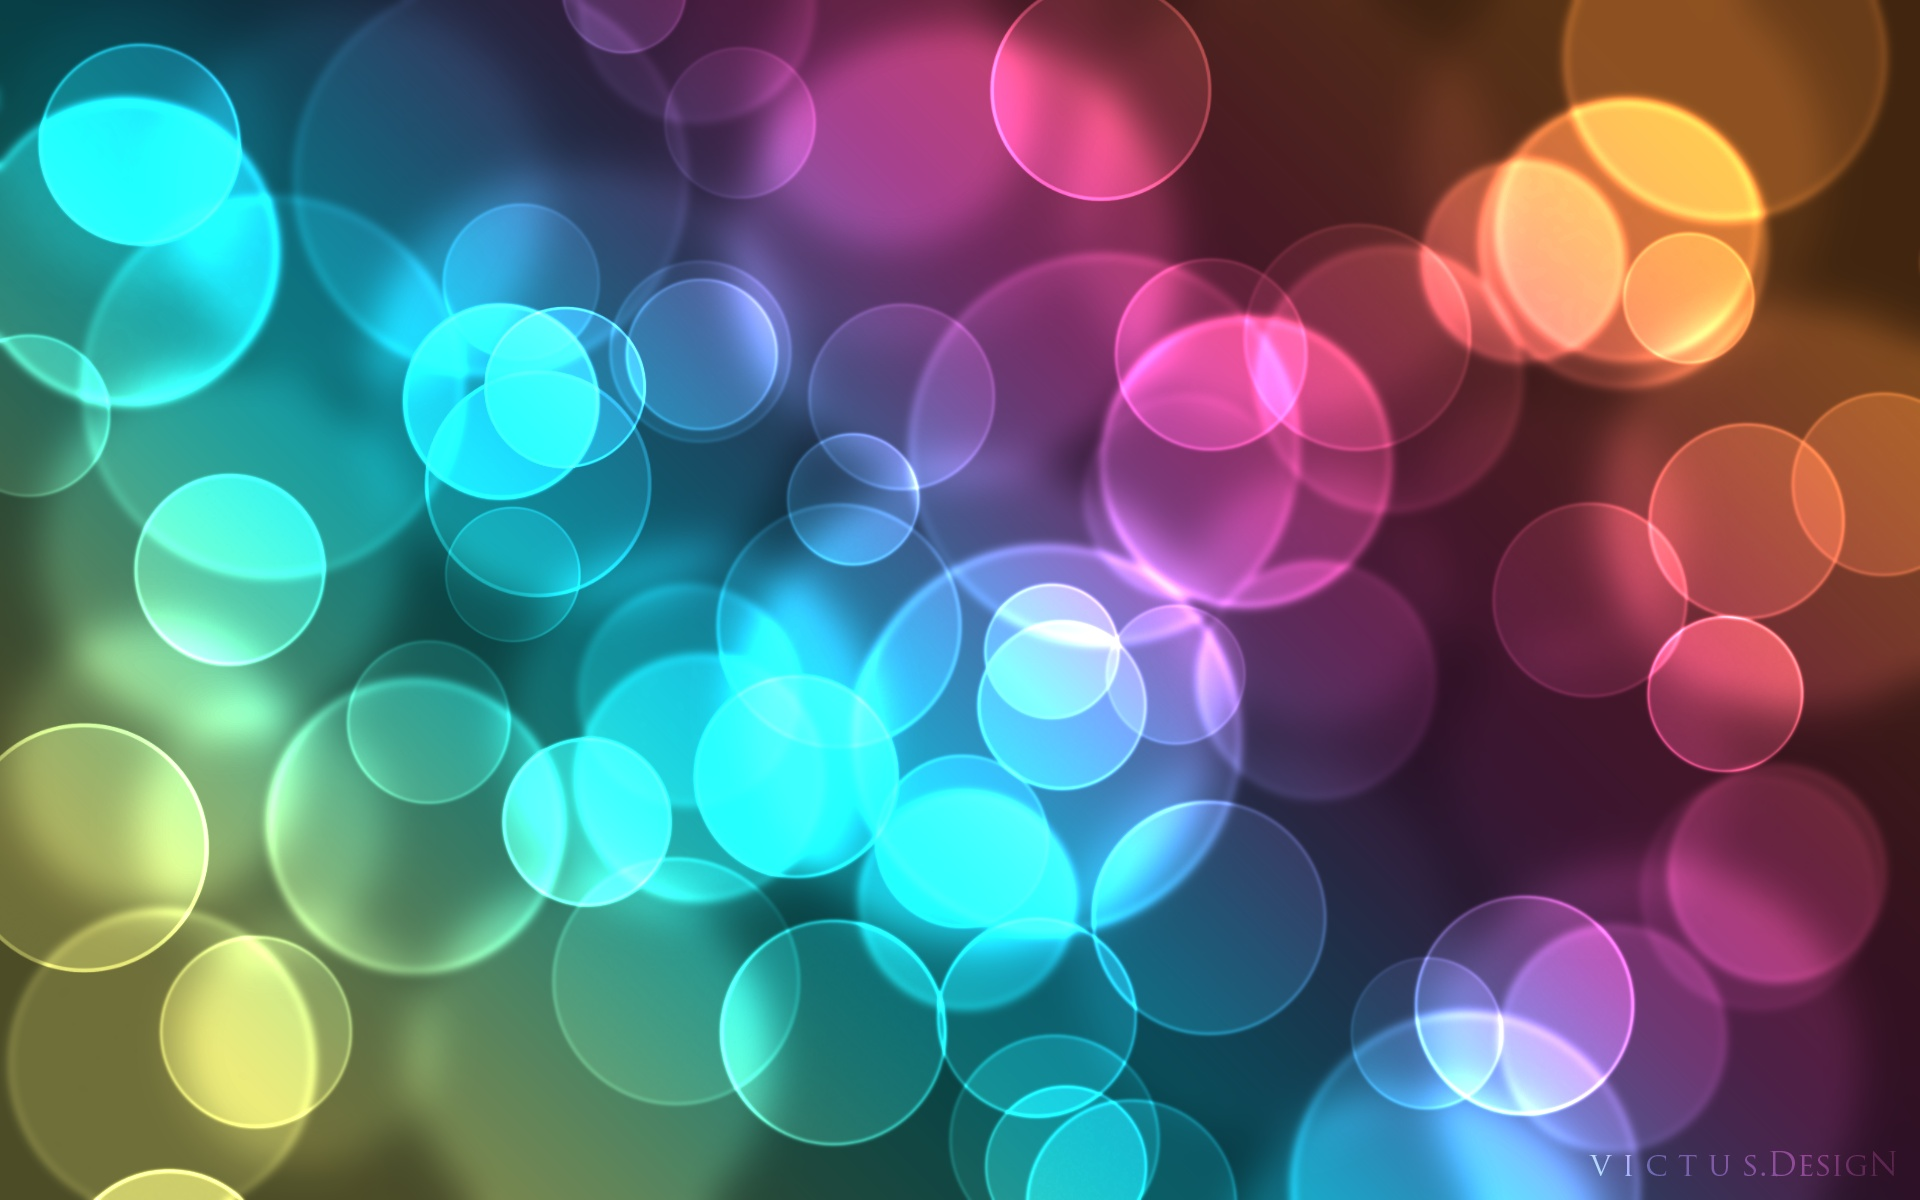 Colorful Wallpapers For Desktop HD Wallpapers Pulse 1920x1200